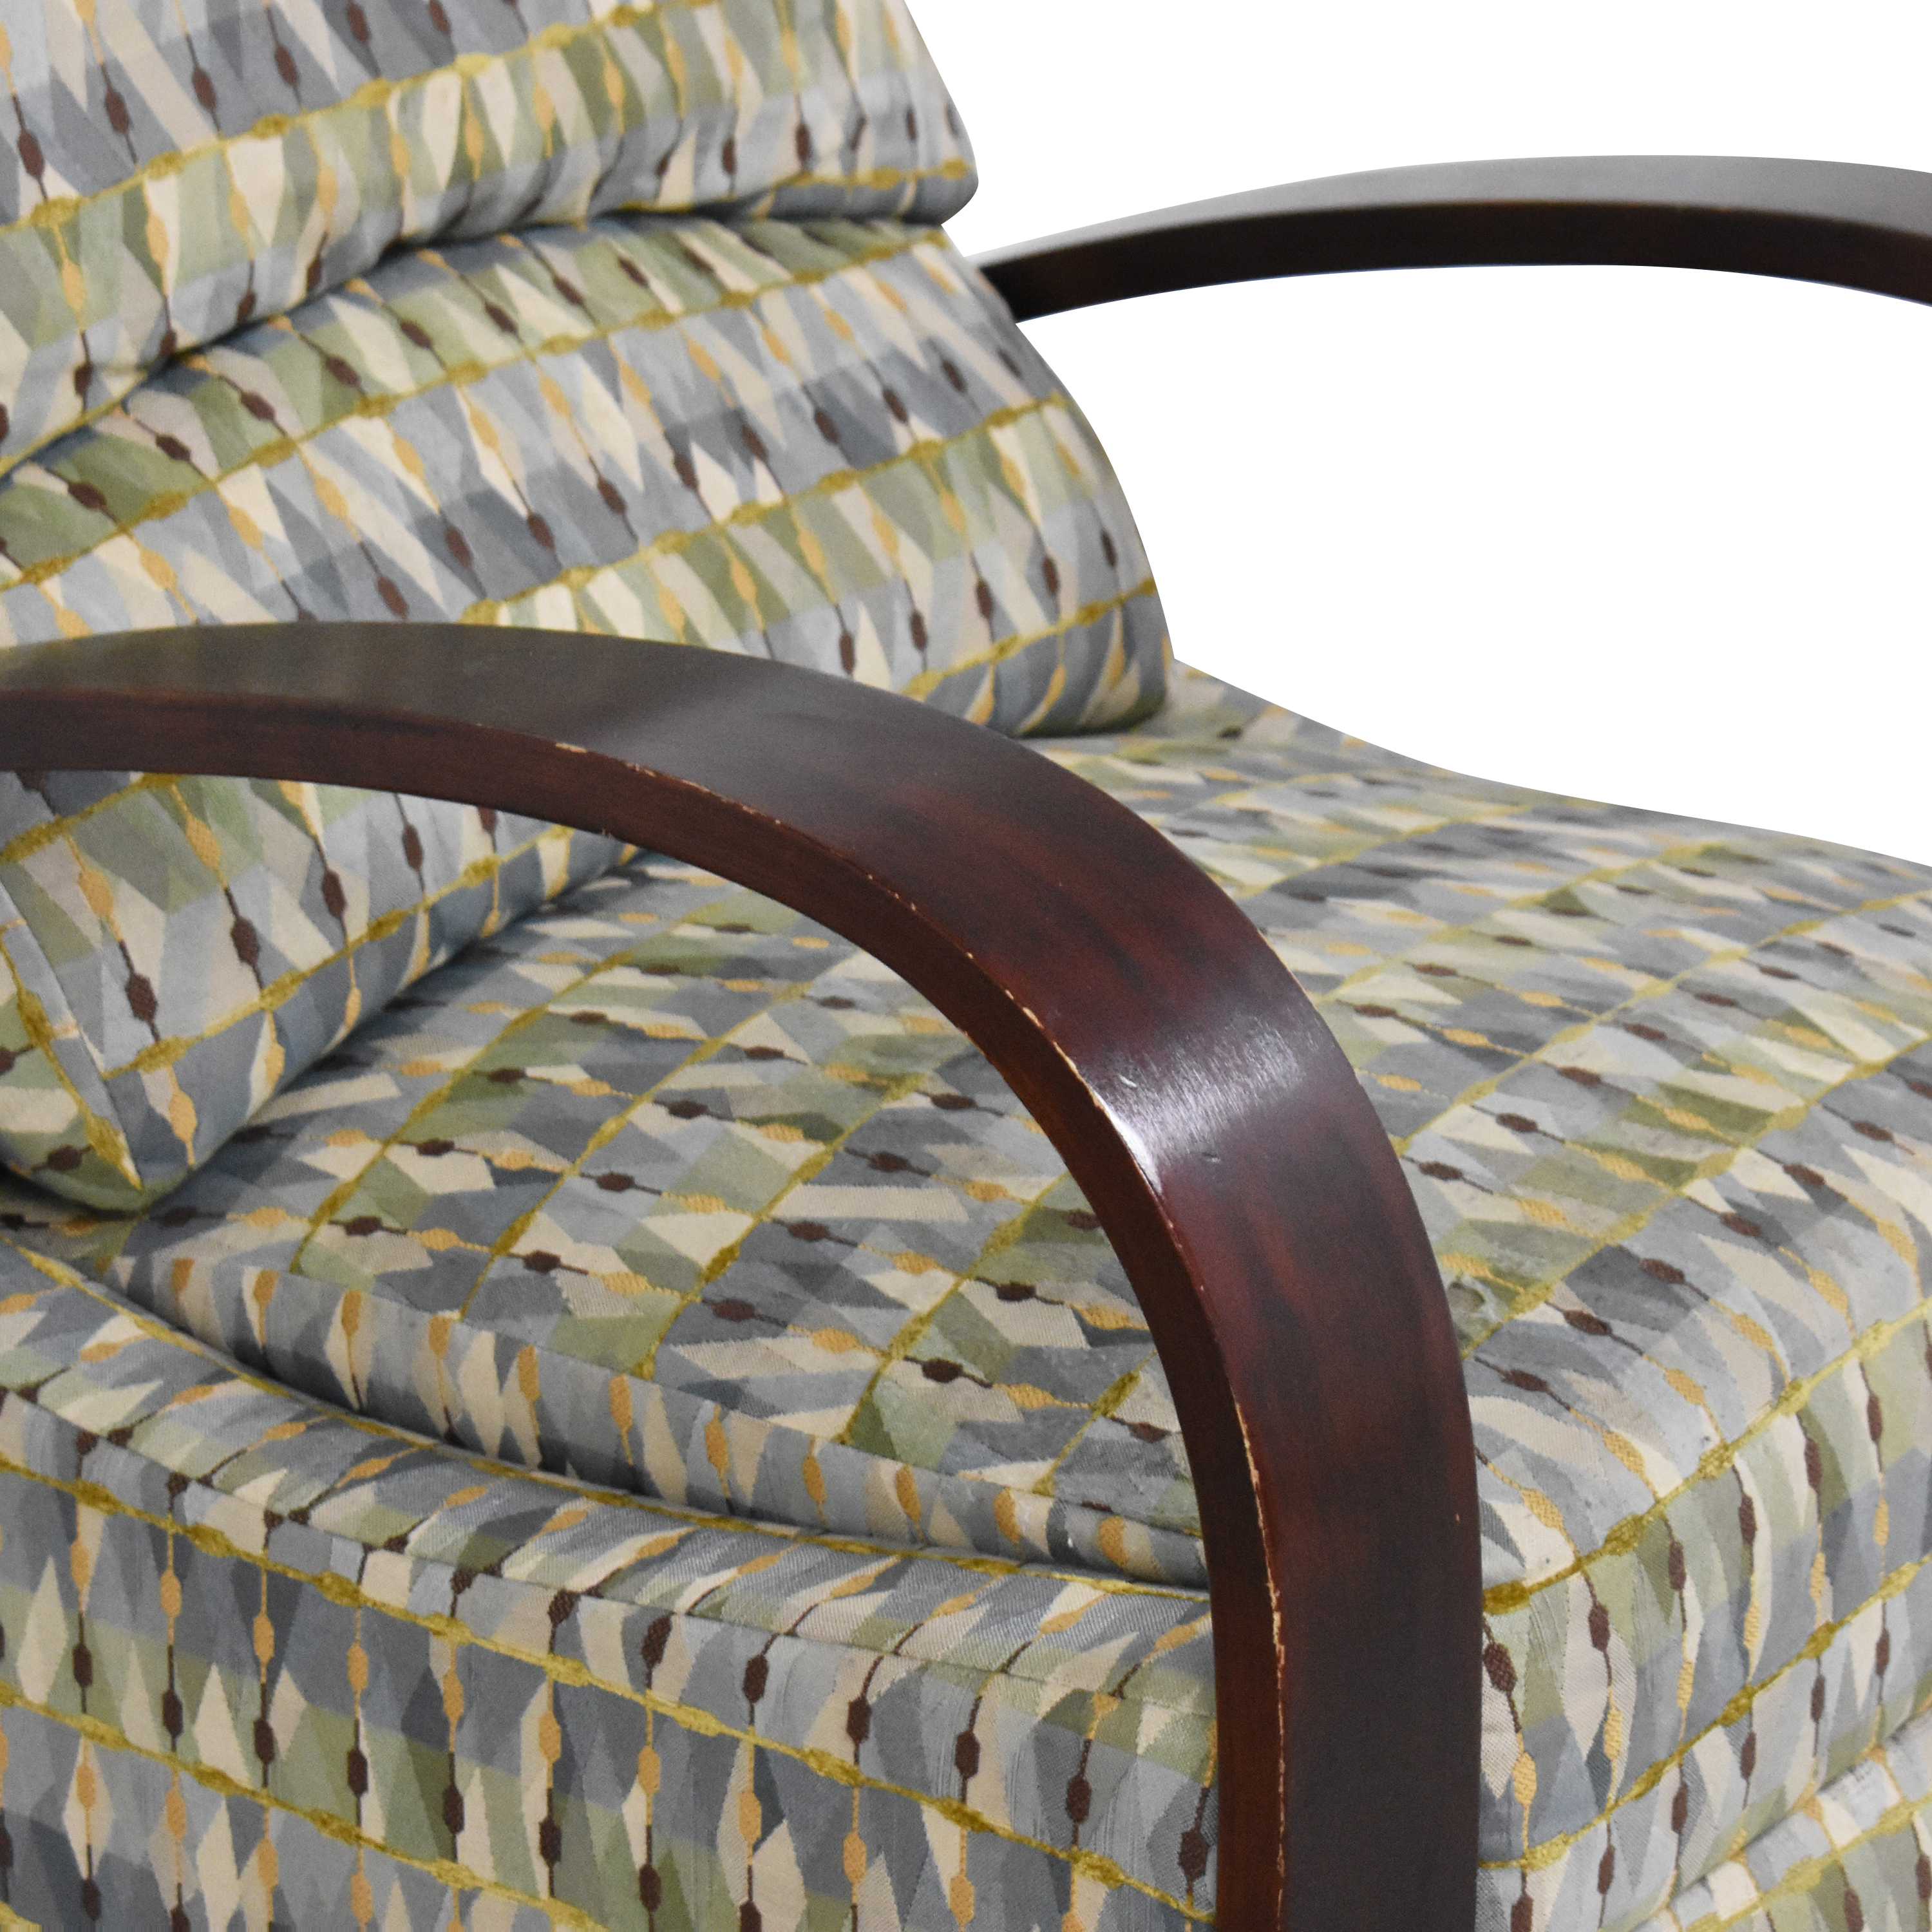 Raymour & Flanigan Raymour & Flanigan Patterned Recliner on sale